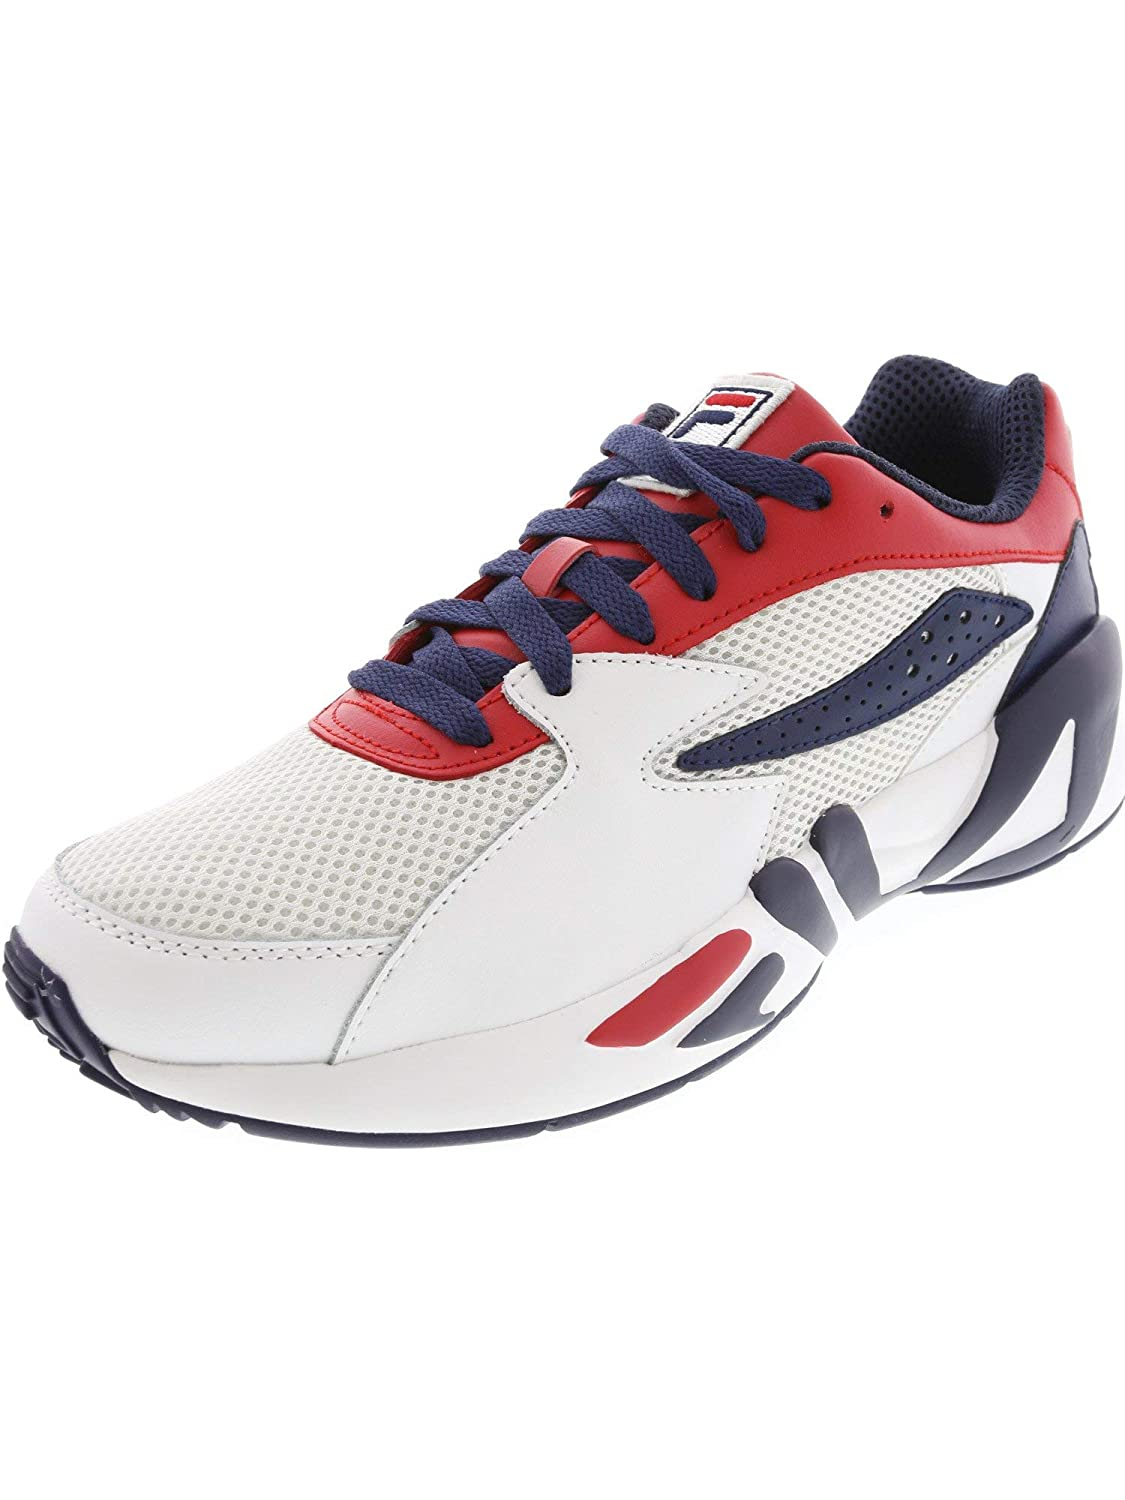 Fire Red   White   Navy Fila Men's Mindblower Athletic Style Casual Sneaker